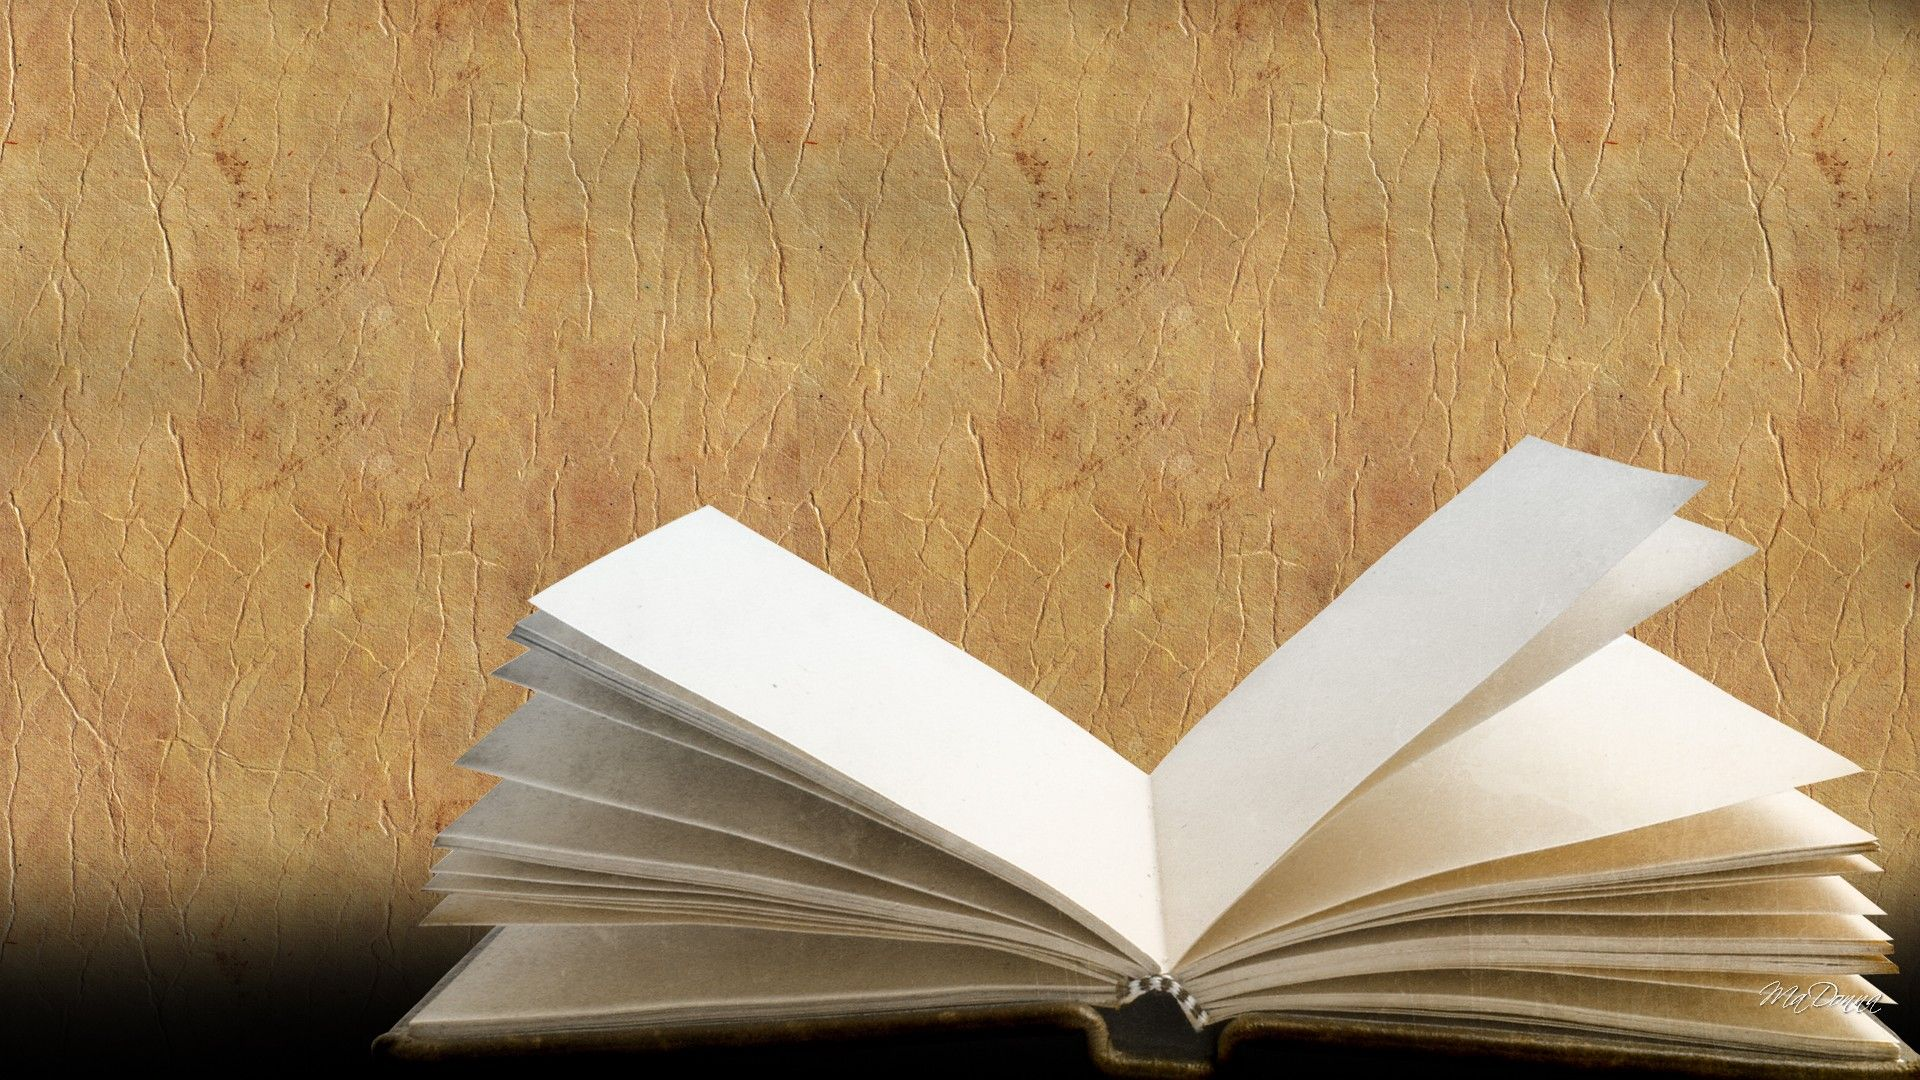 188 Book Hd Wallpapers Backgrounds Wallpaper Abyss Floral Illustration Wallpaper Book Wallpaper Book Background